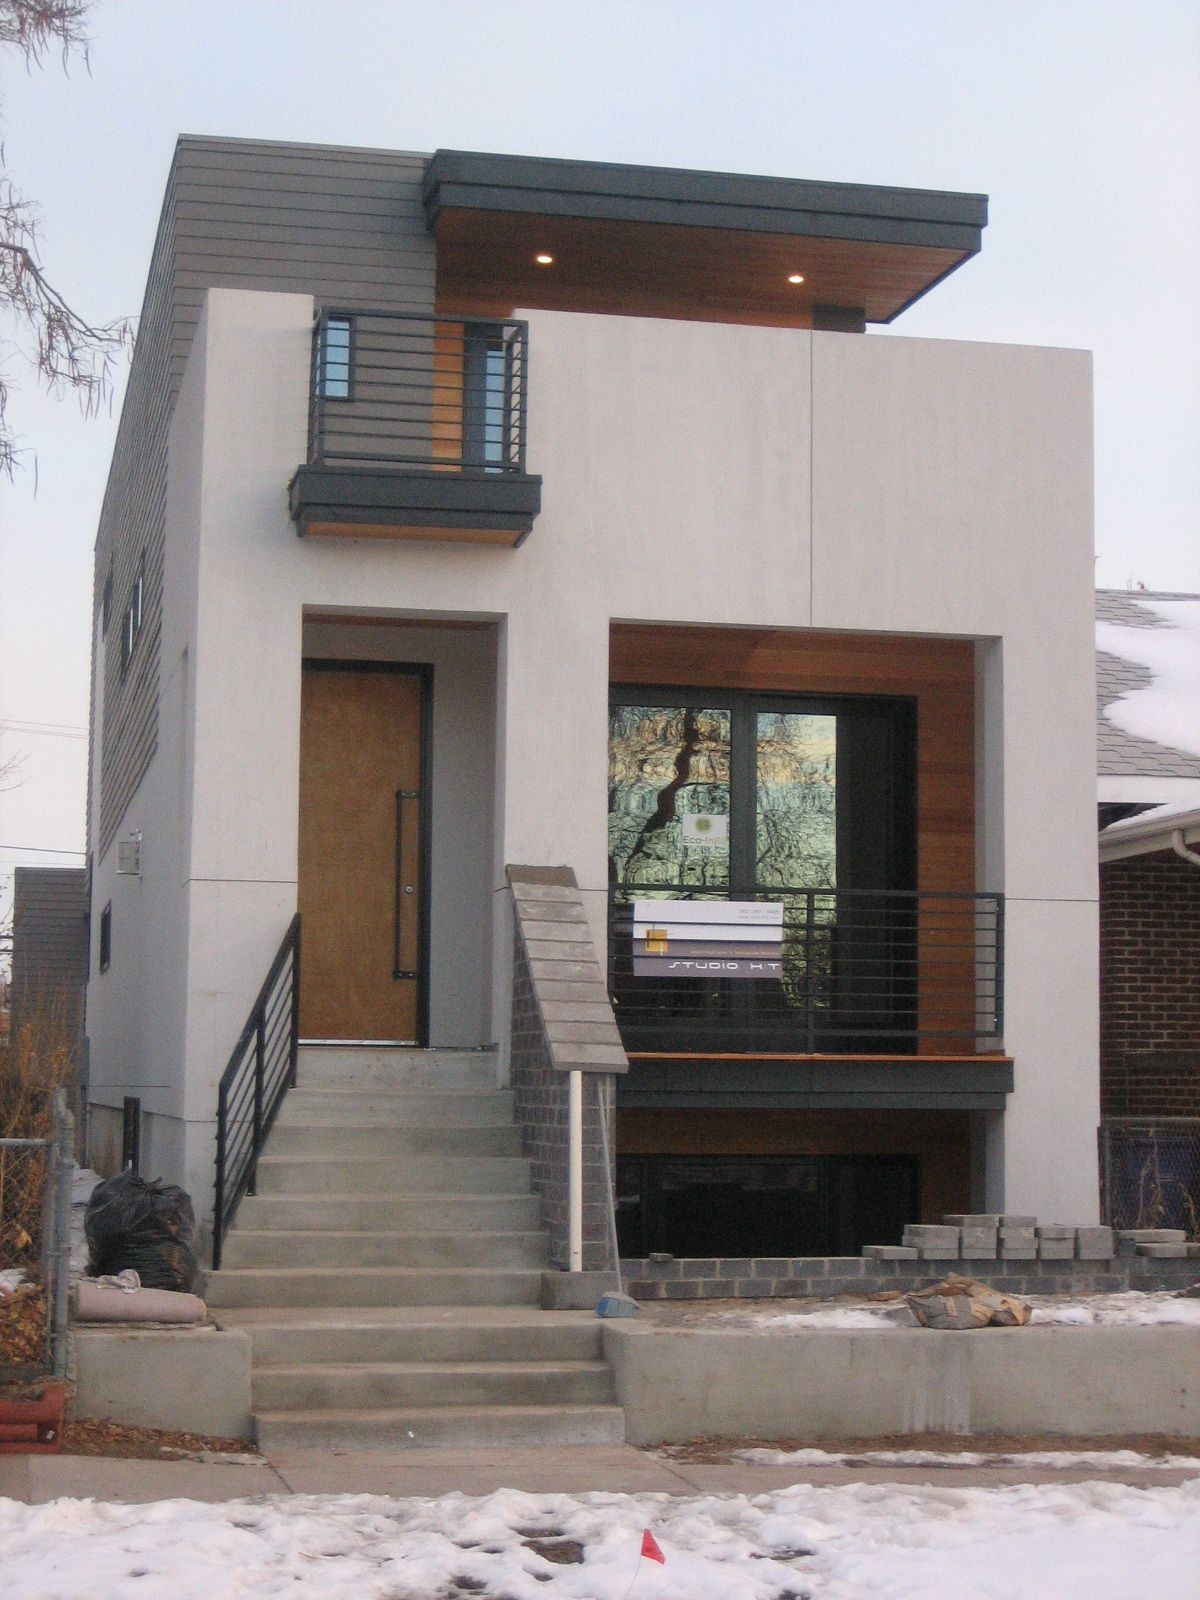 Best Small House Plans Residential Architecture Lovely Awesome Minimalist Prefabricated Small Houses with Stairs